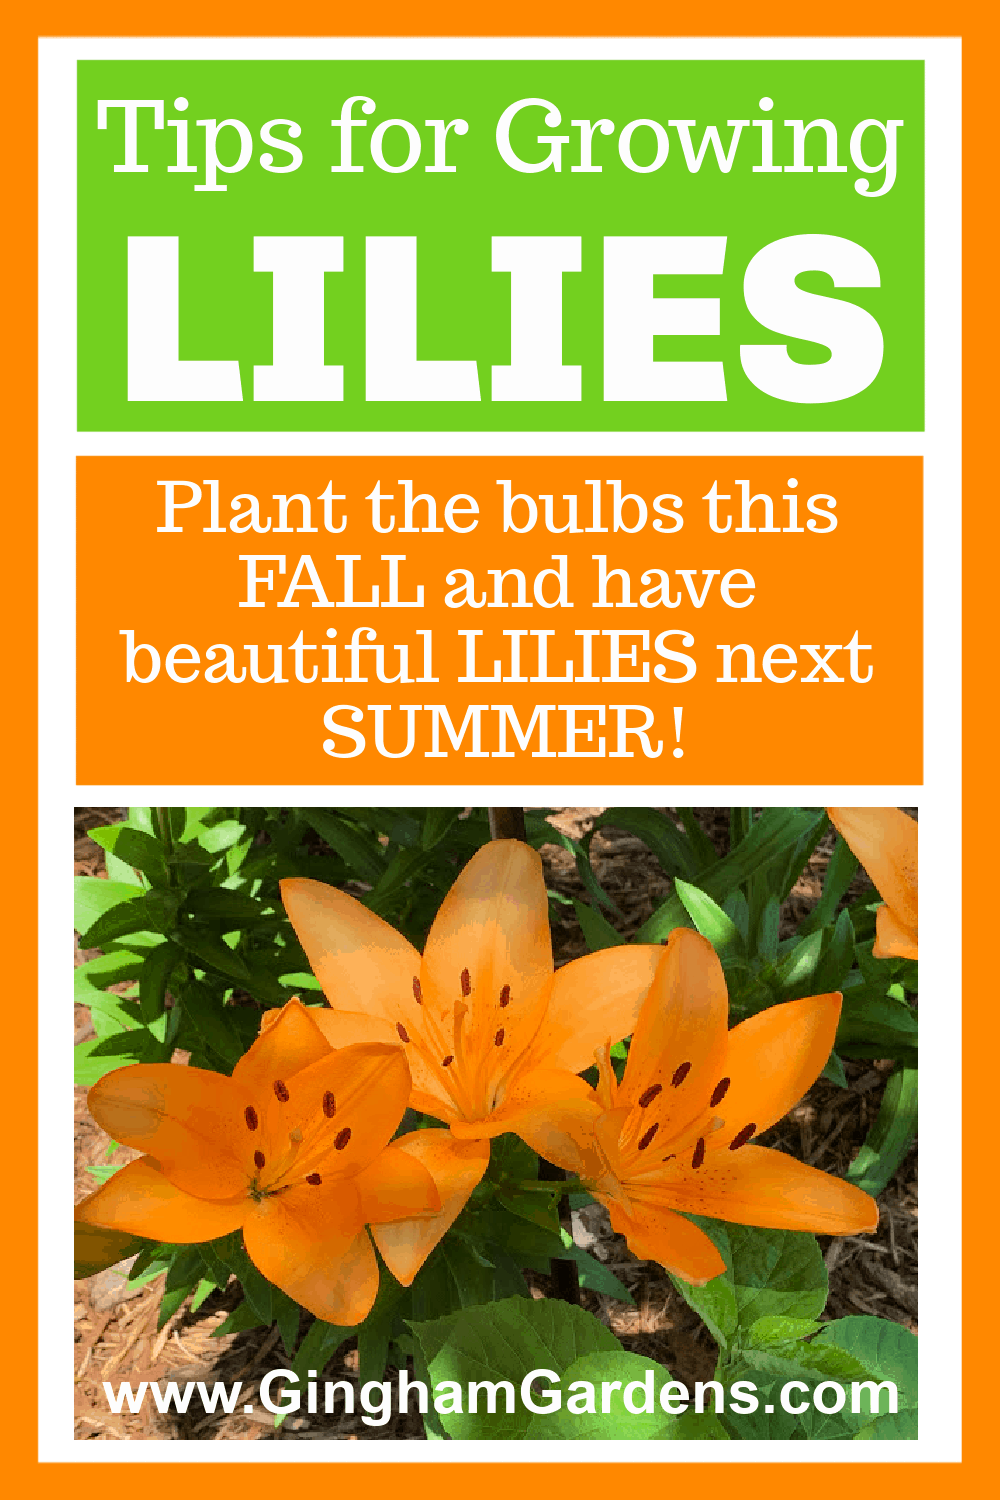 Image of Lilies with Text Overlay - Tips for Growing Lilies